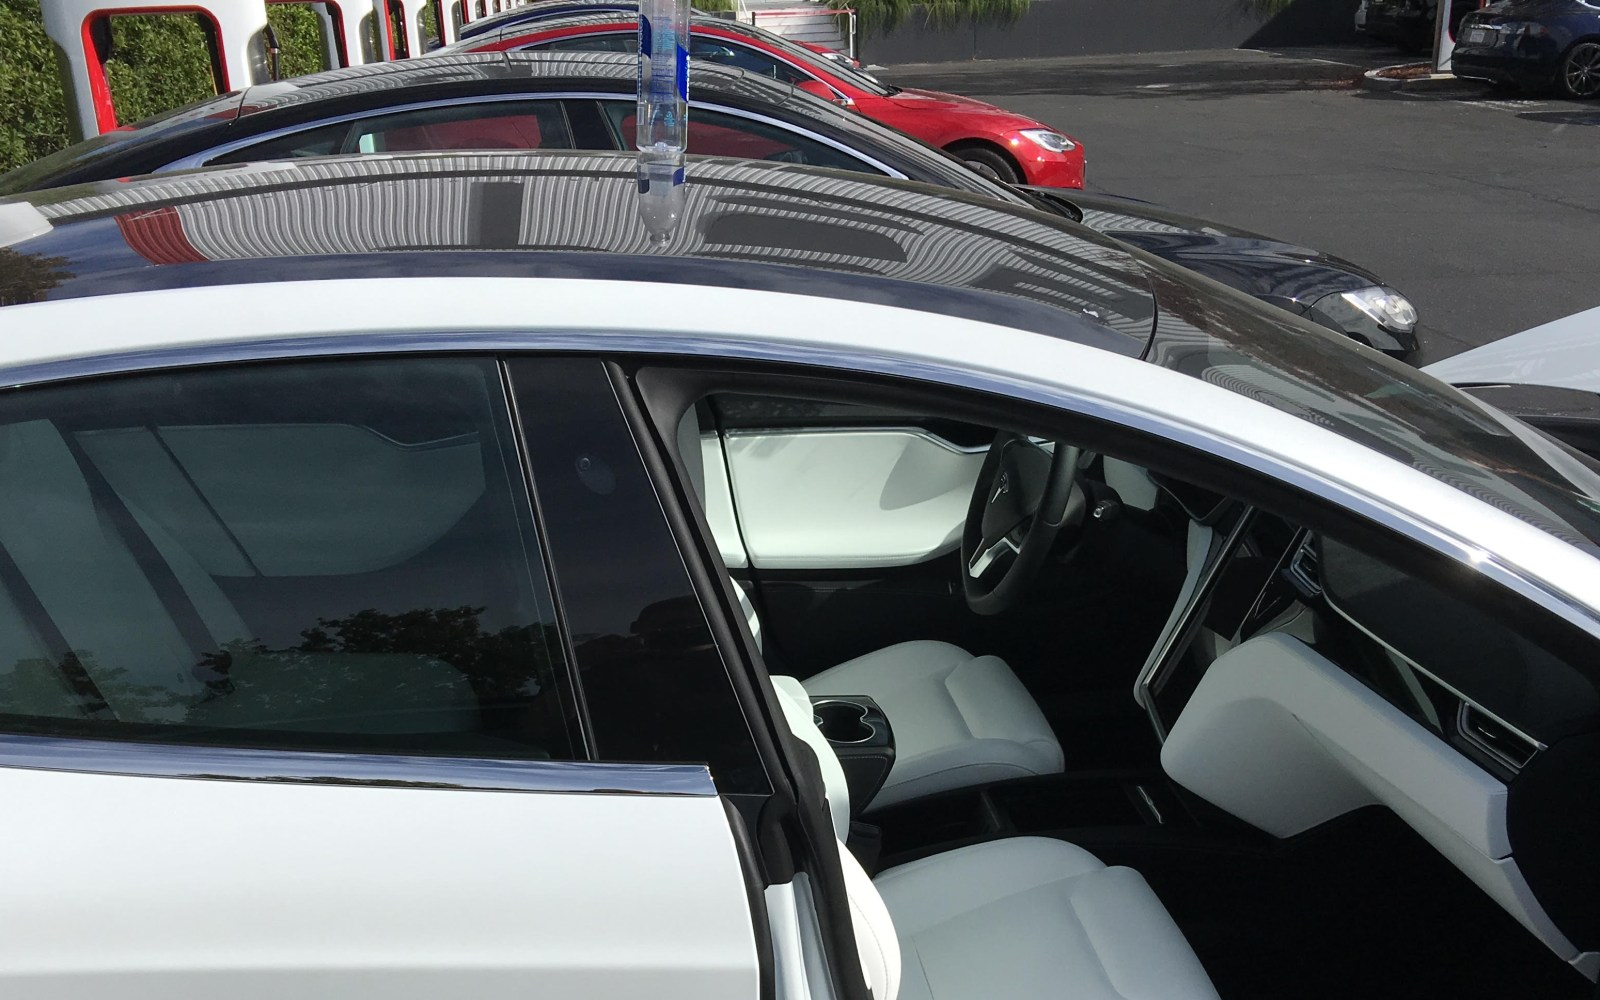 First look at Tesla's new Model 3-like glass roof on the Model S [Gallery]